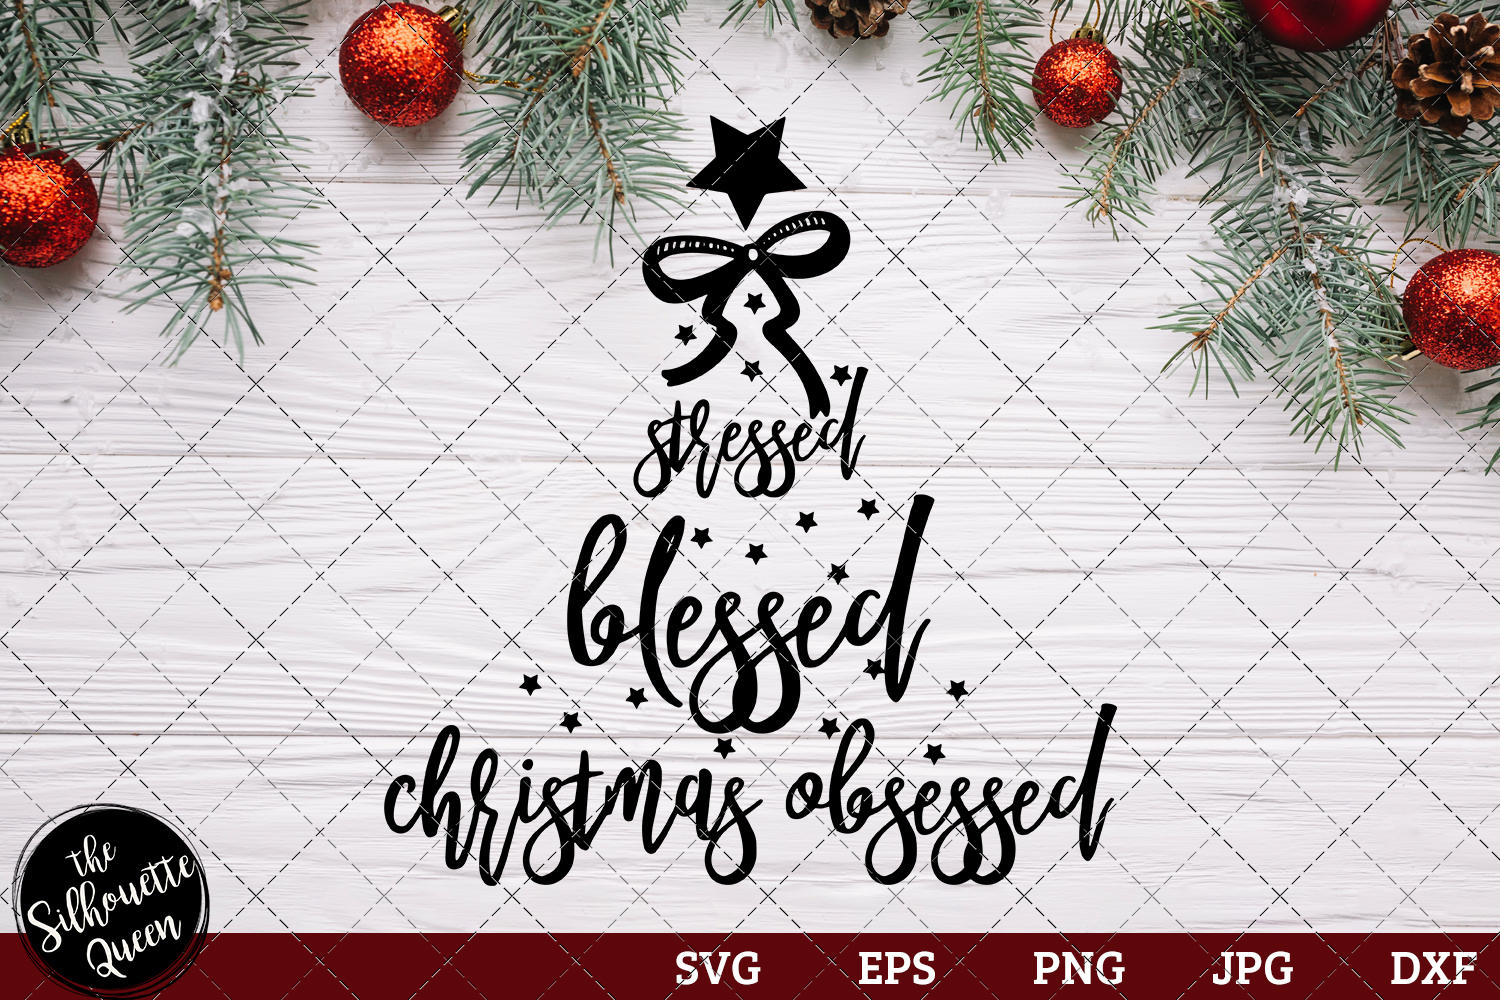 Download Free Stressed Blessed And Christmas Obsessed Graphic By for Cricut Explore, Silhouette and other cutting machines.